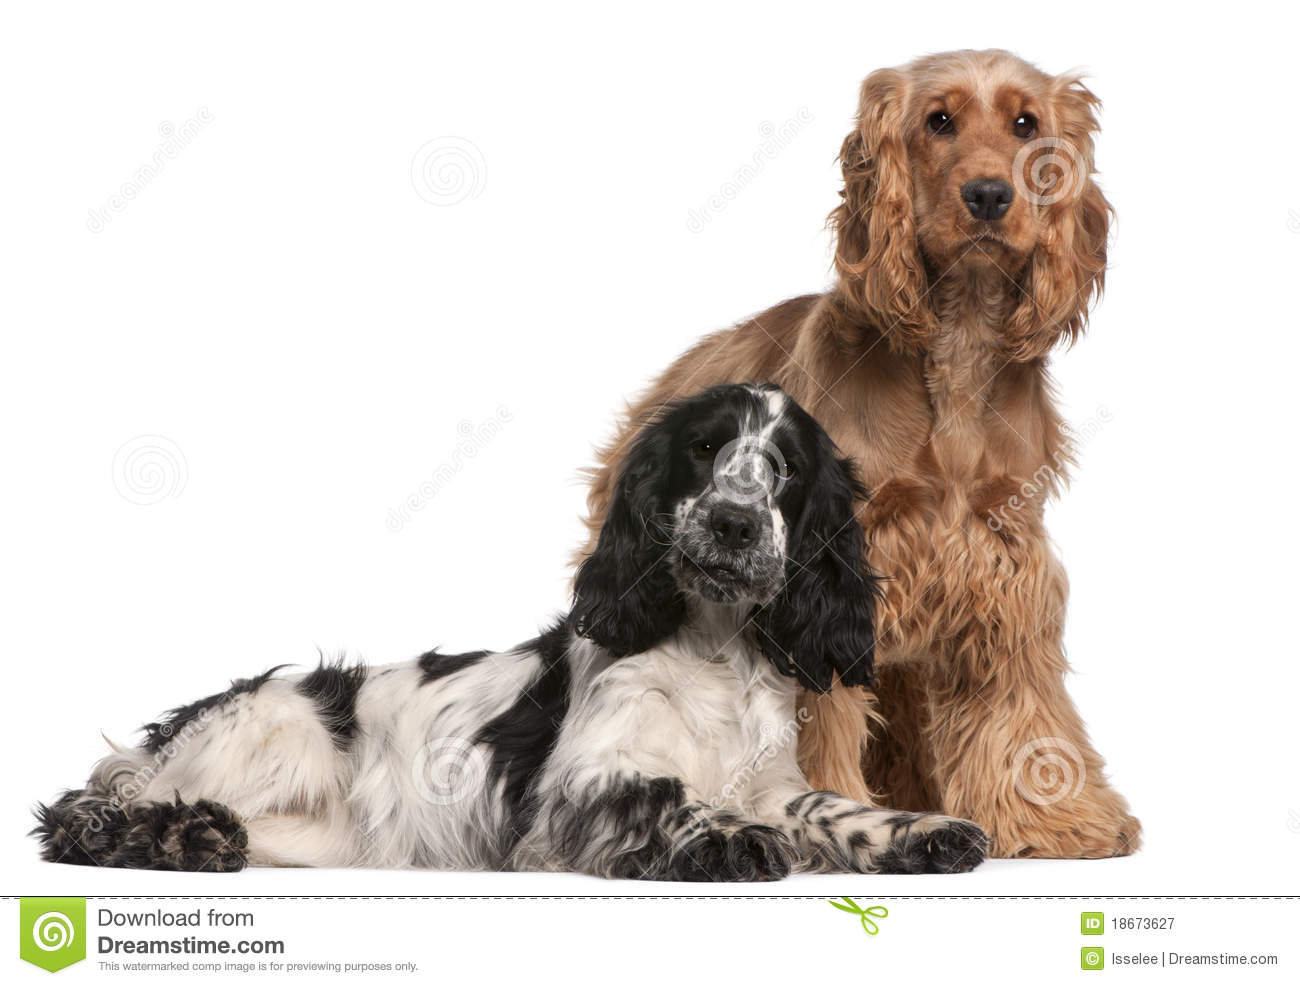 Two English Cocker Spaniels, 2 years old